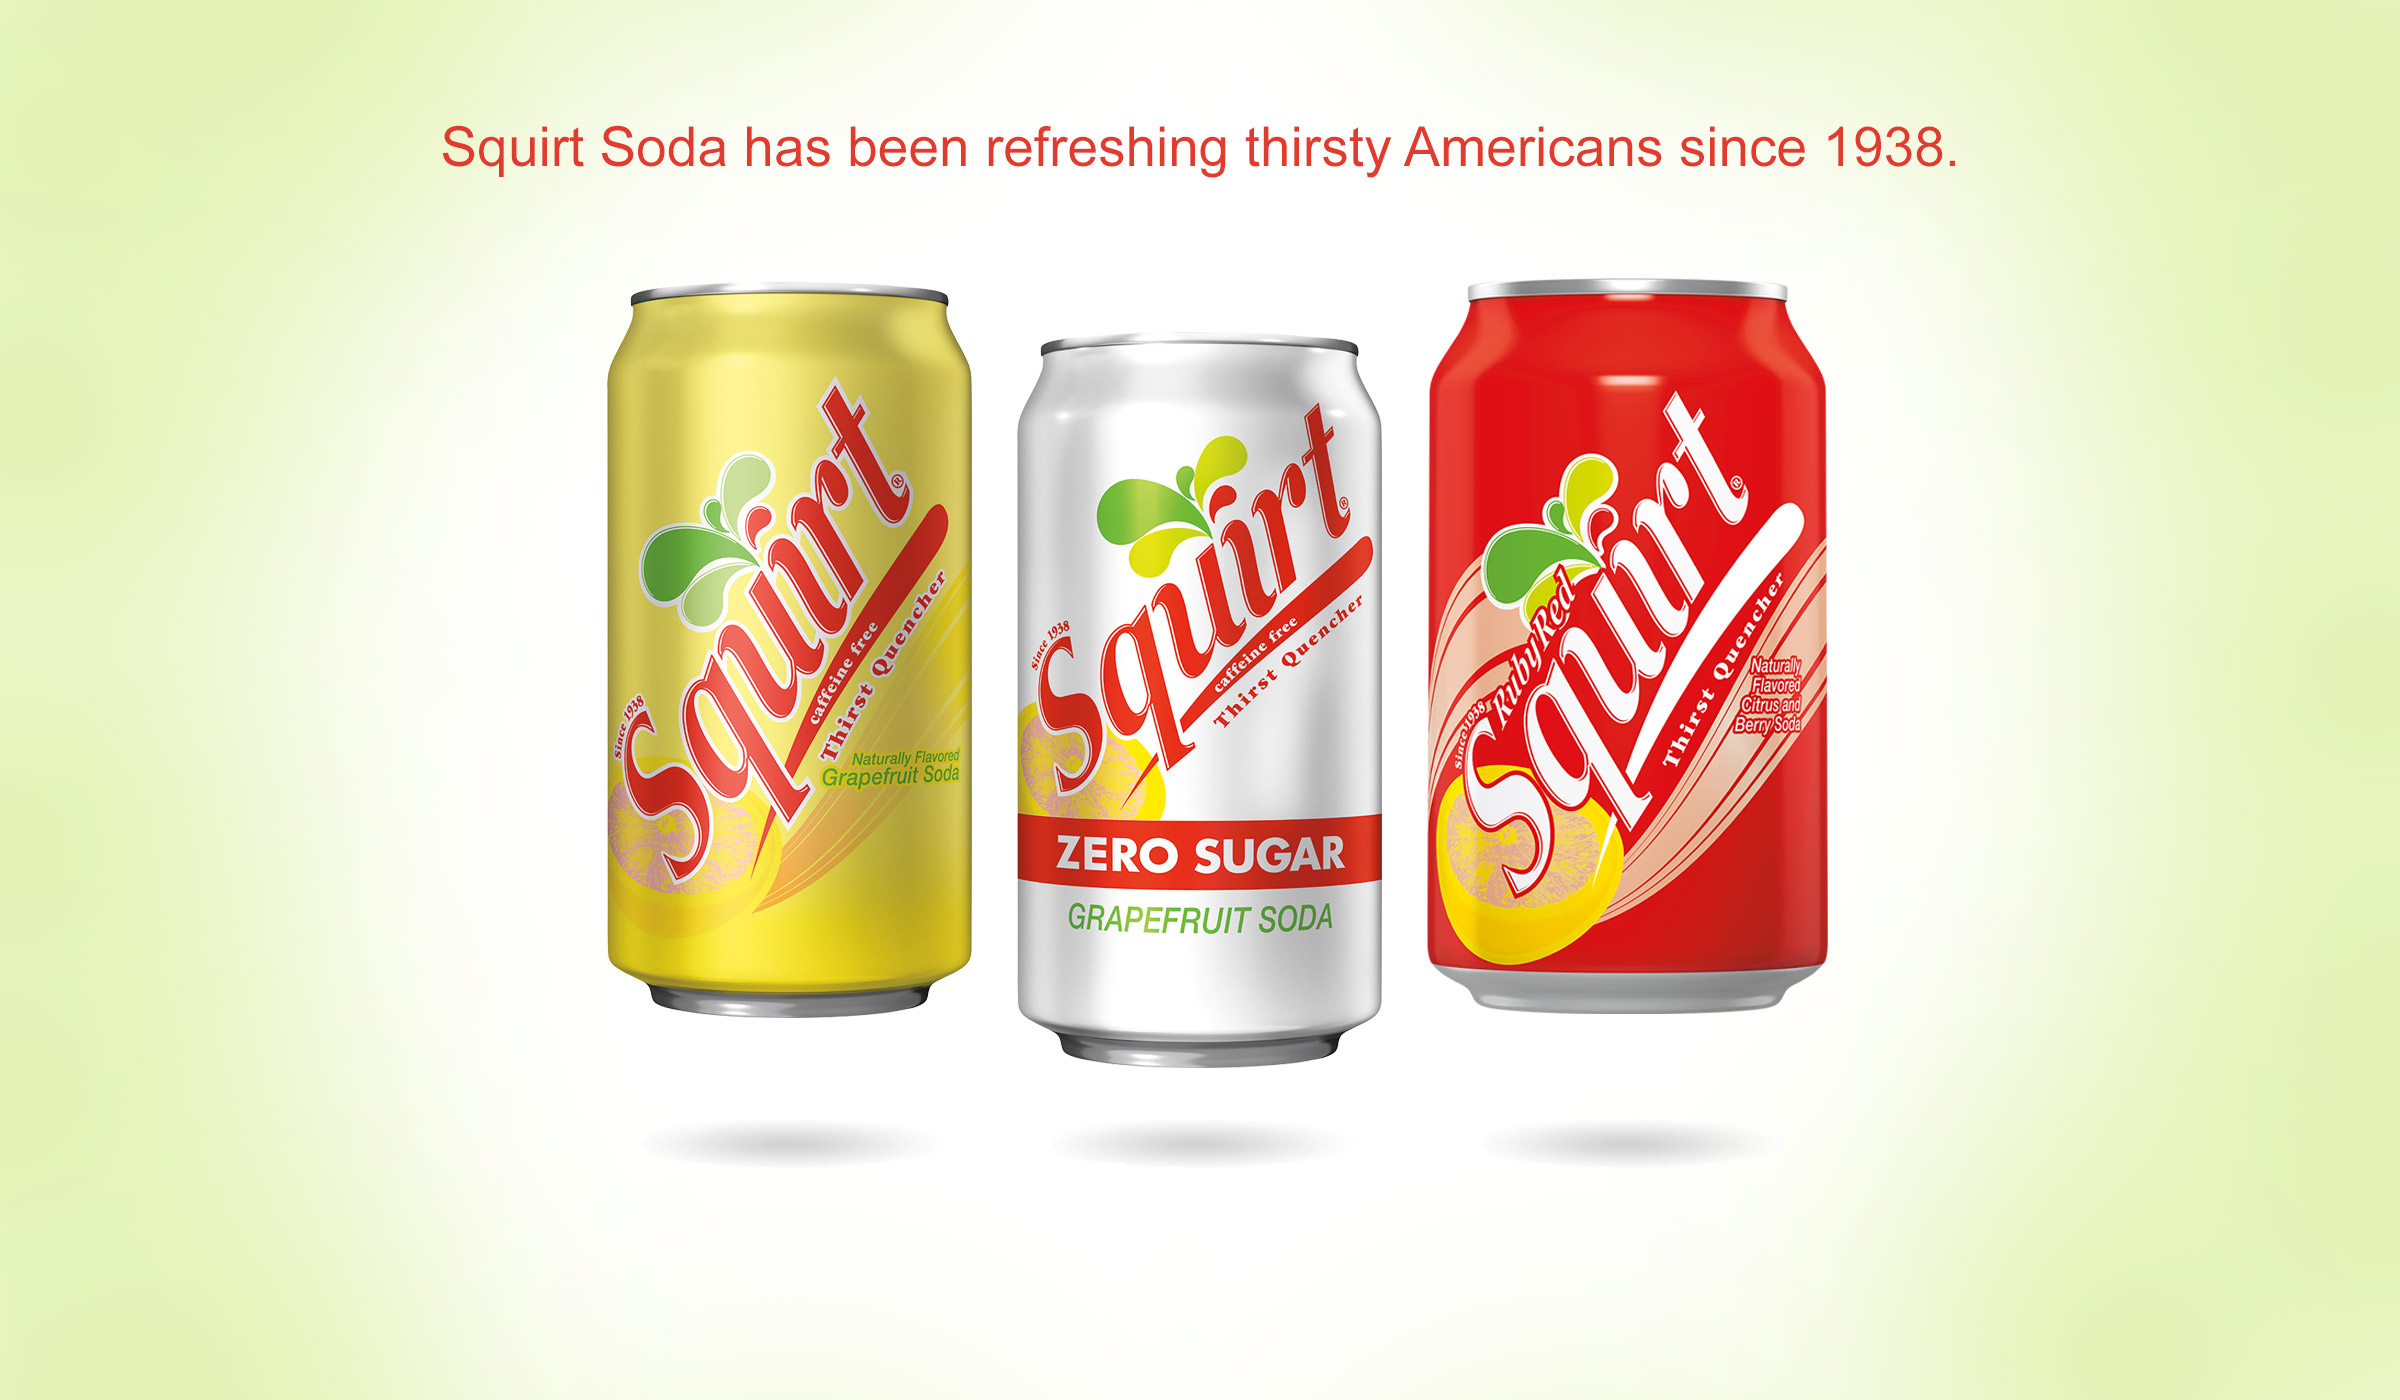 Squirt Soda has been refreshing thirsty Americans since 1938